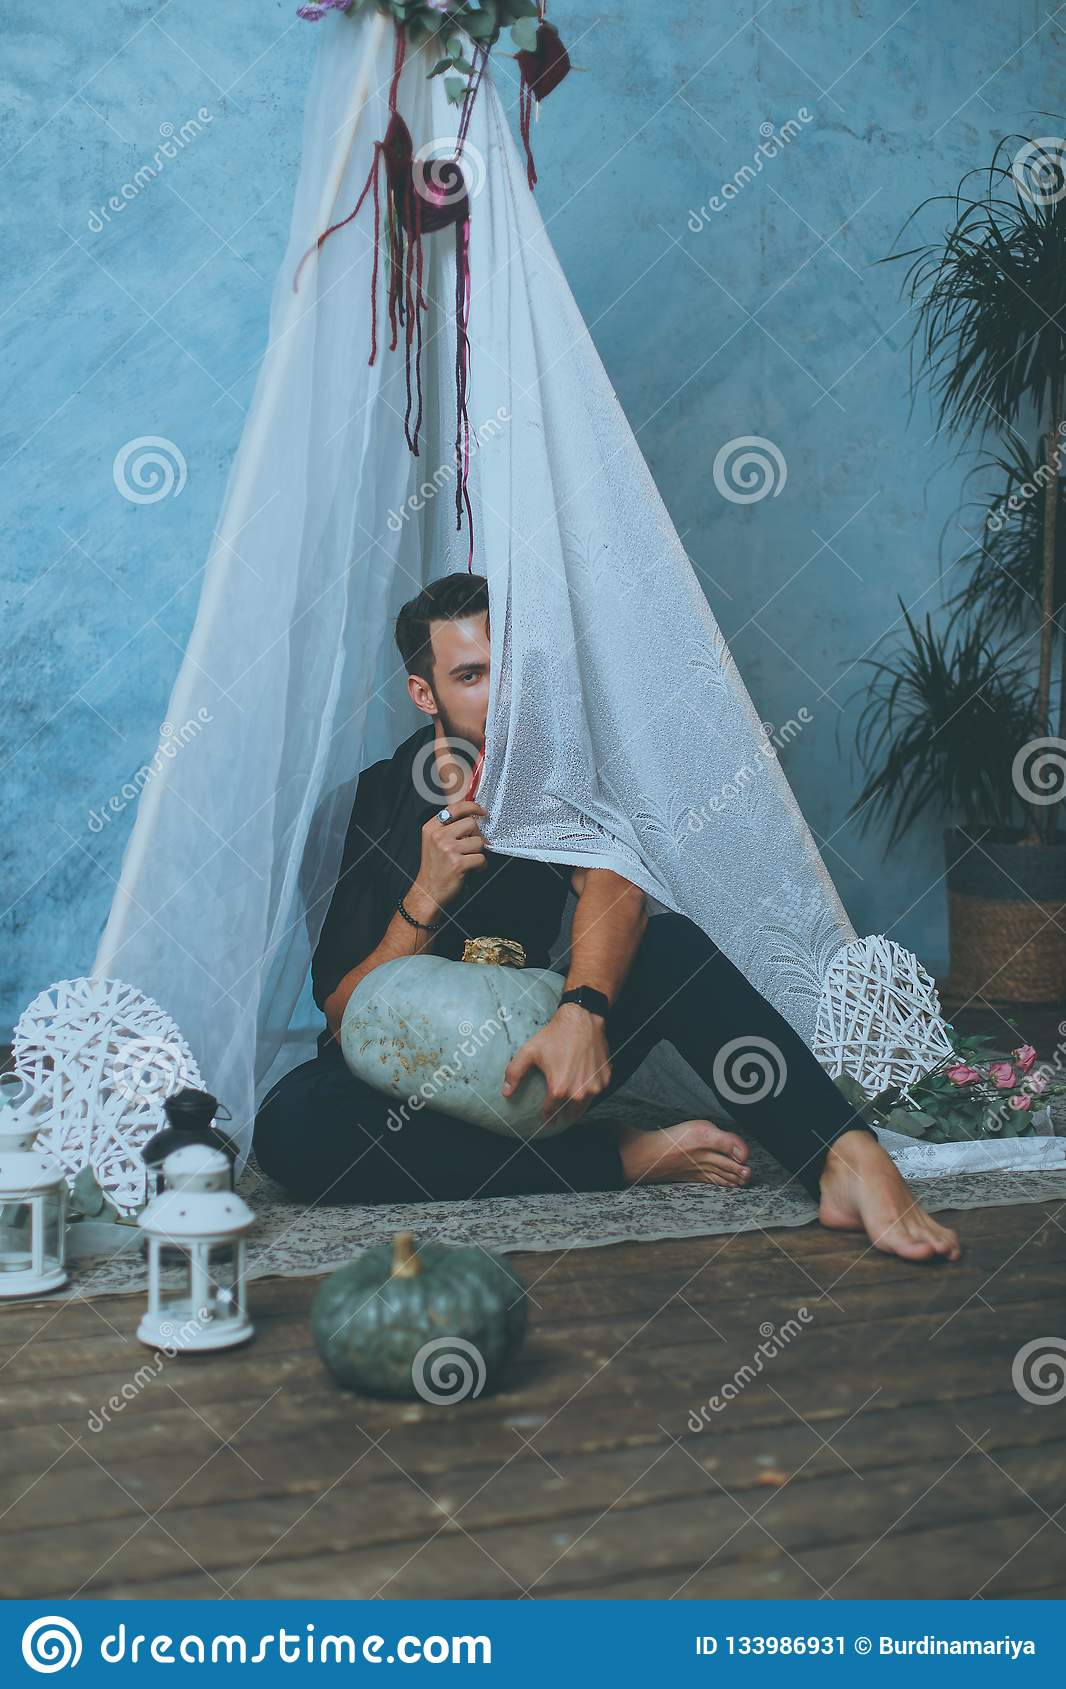 Man in a teepee